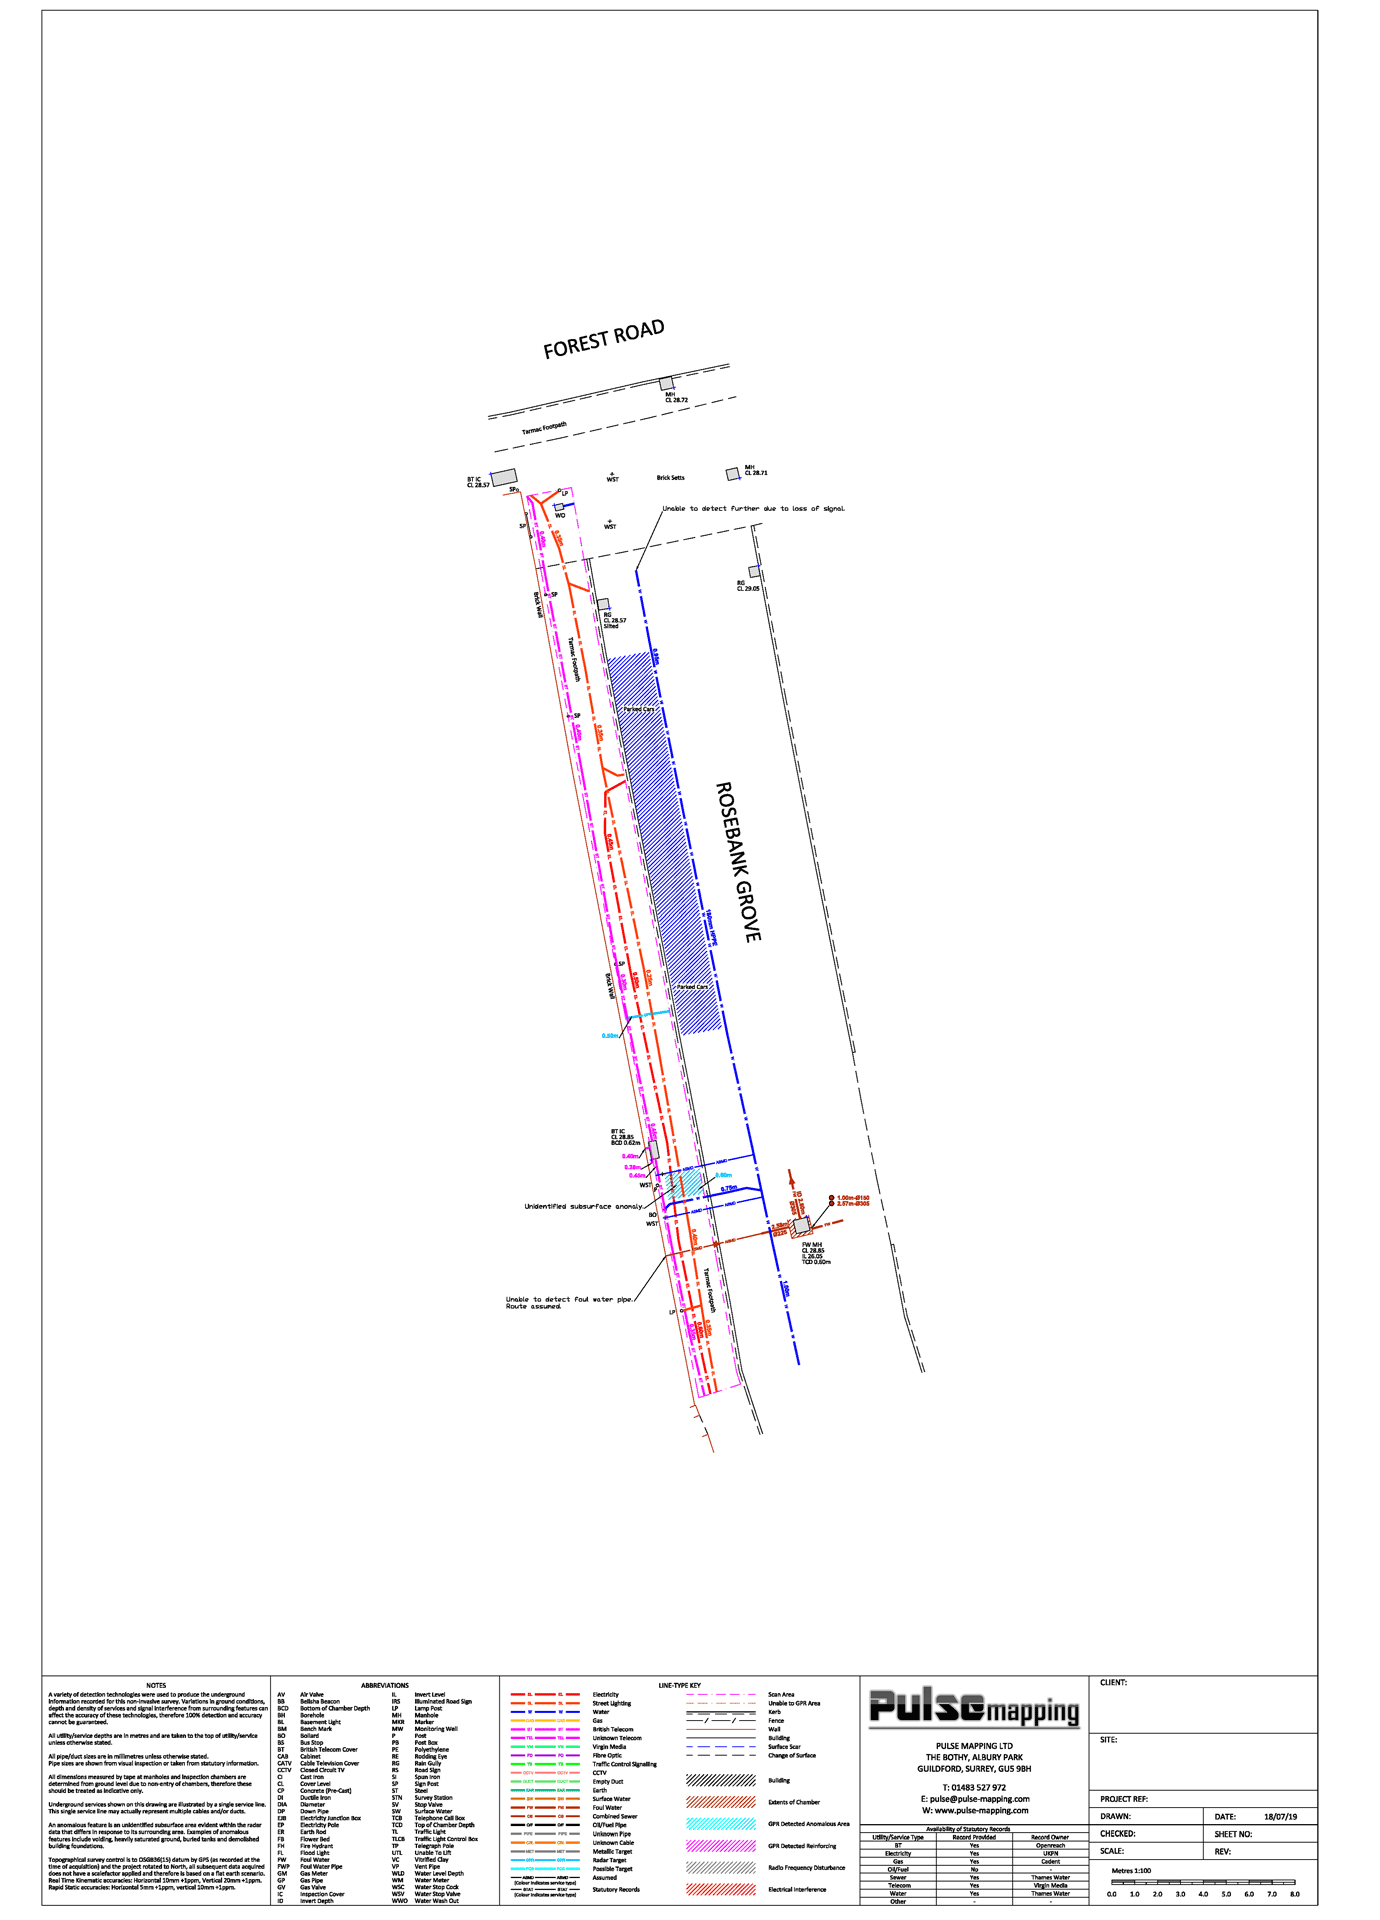 Utility mapping survey of a pavement